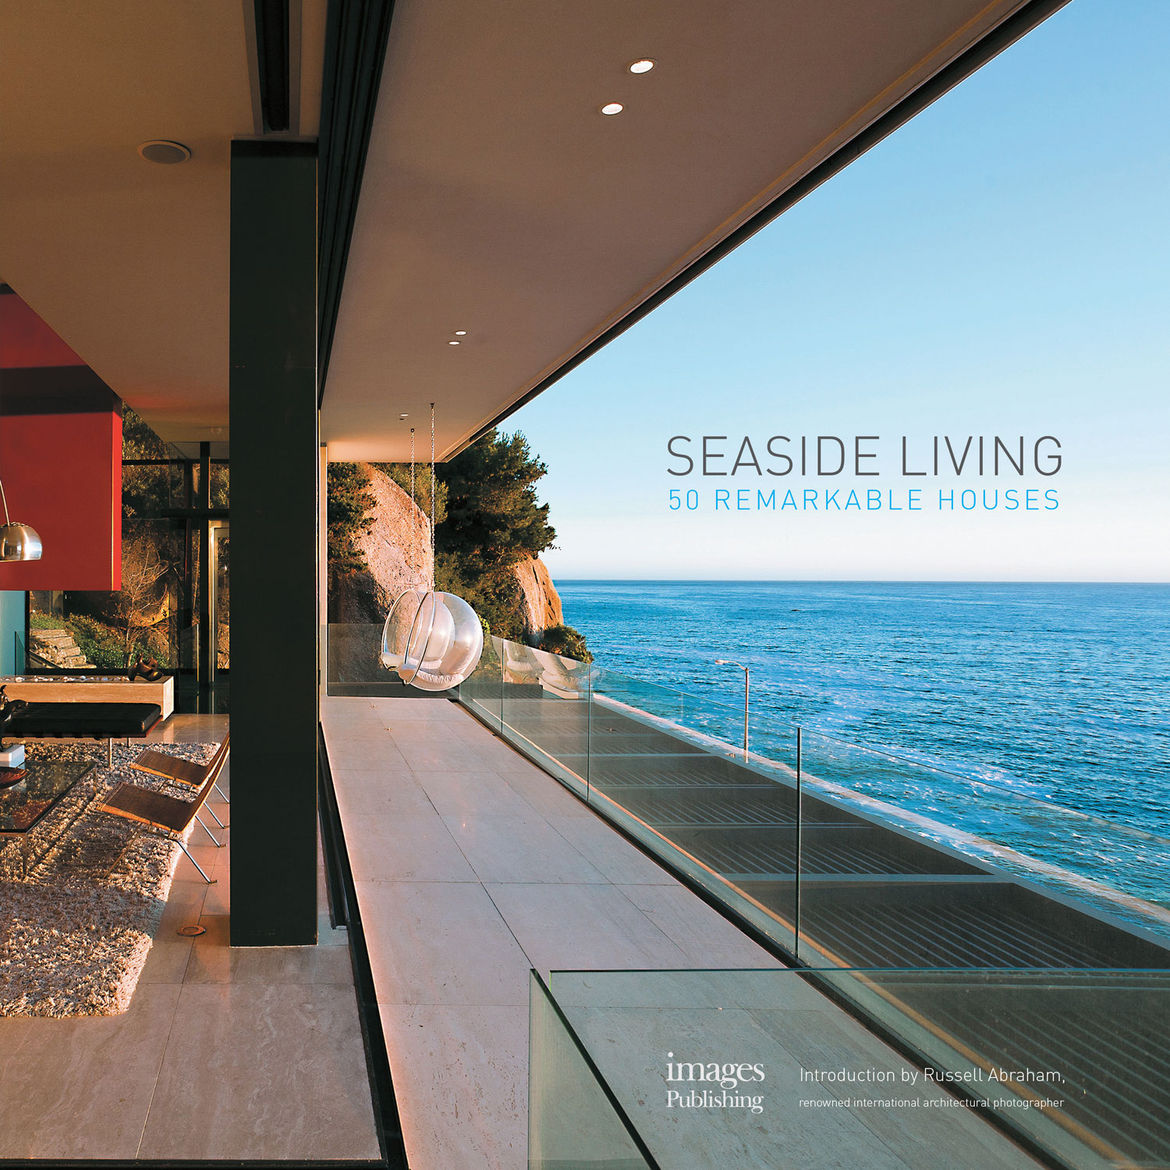 Seaside Living: 50 Remarkable Houses